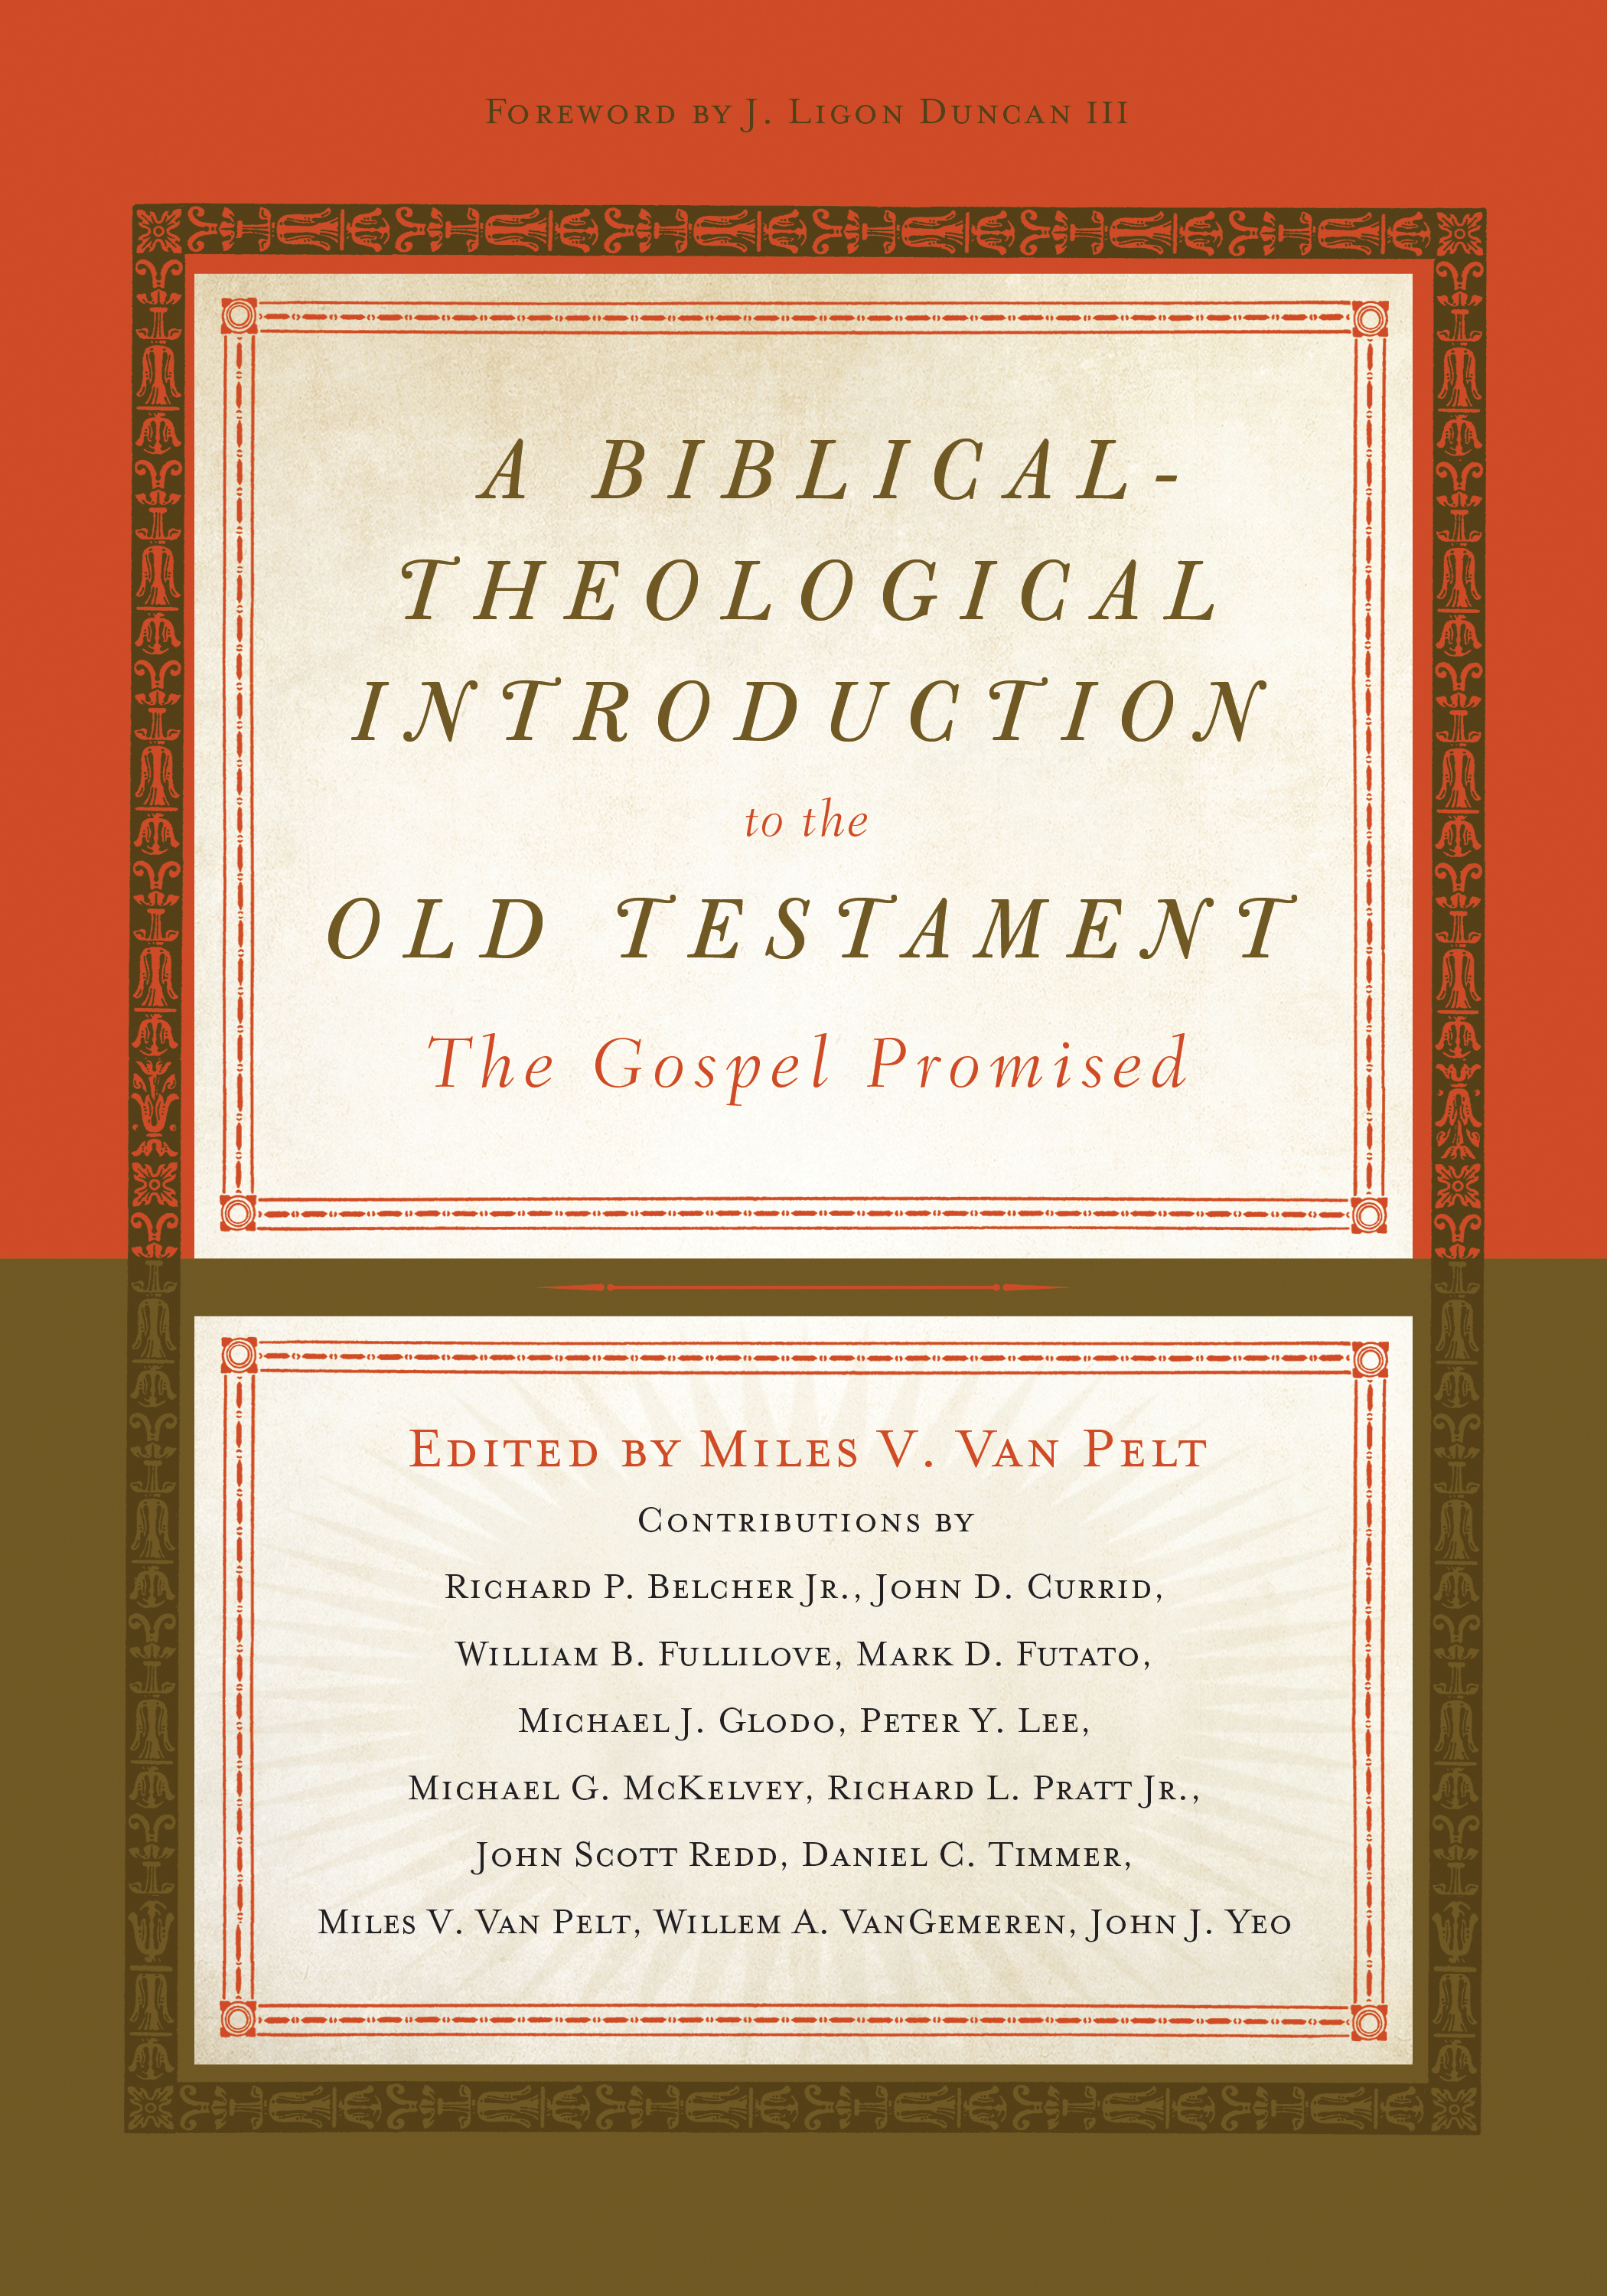 A Biblical-Theological Introduction to the Old Testament The Gospel Promised